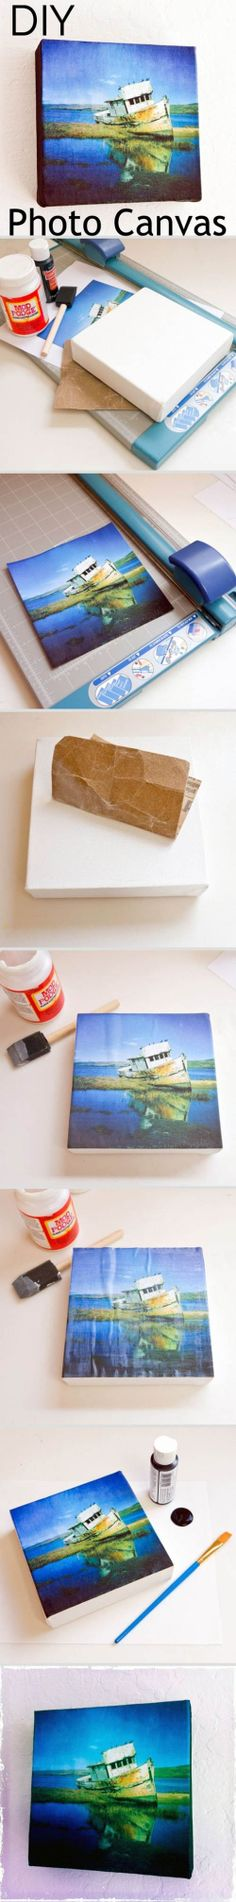 These DIY Photo Canvas pictures are a great budget way to decorate!